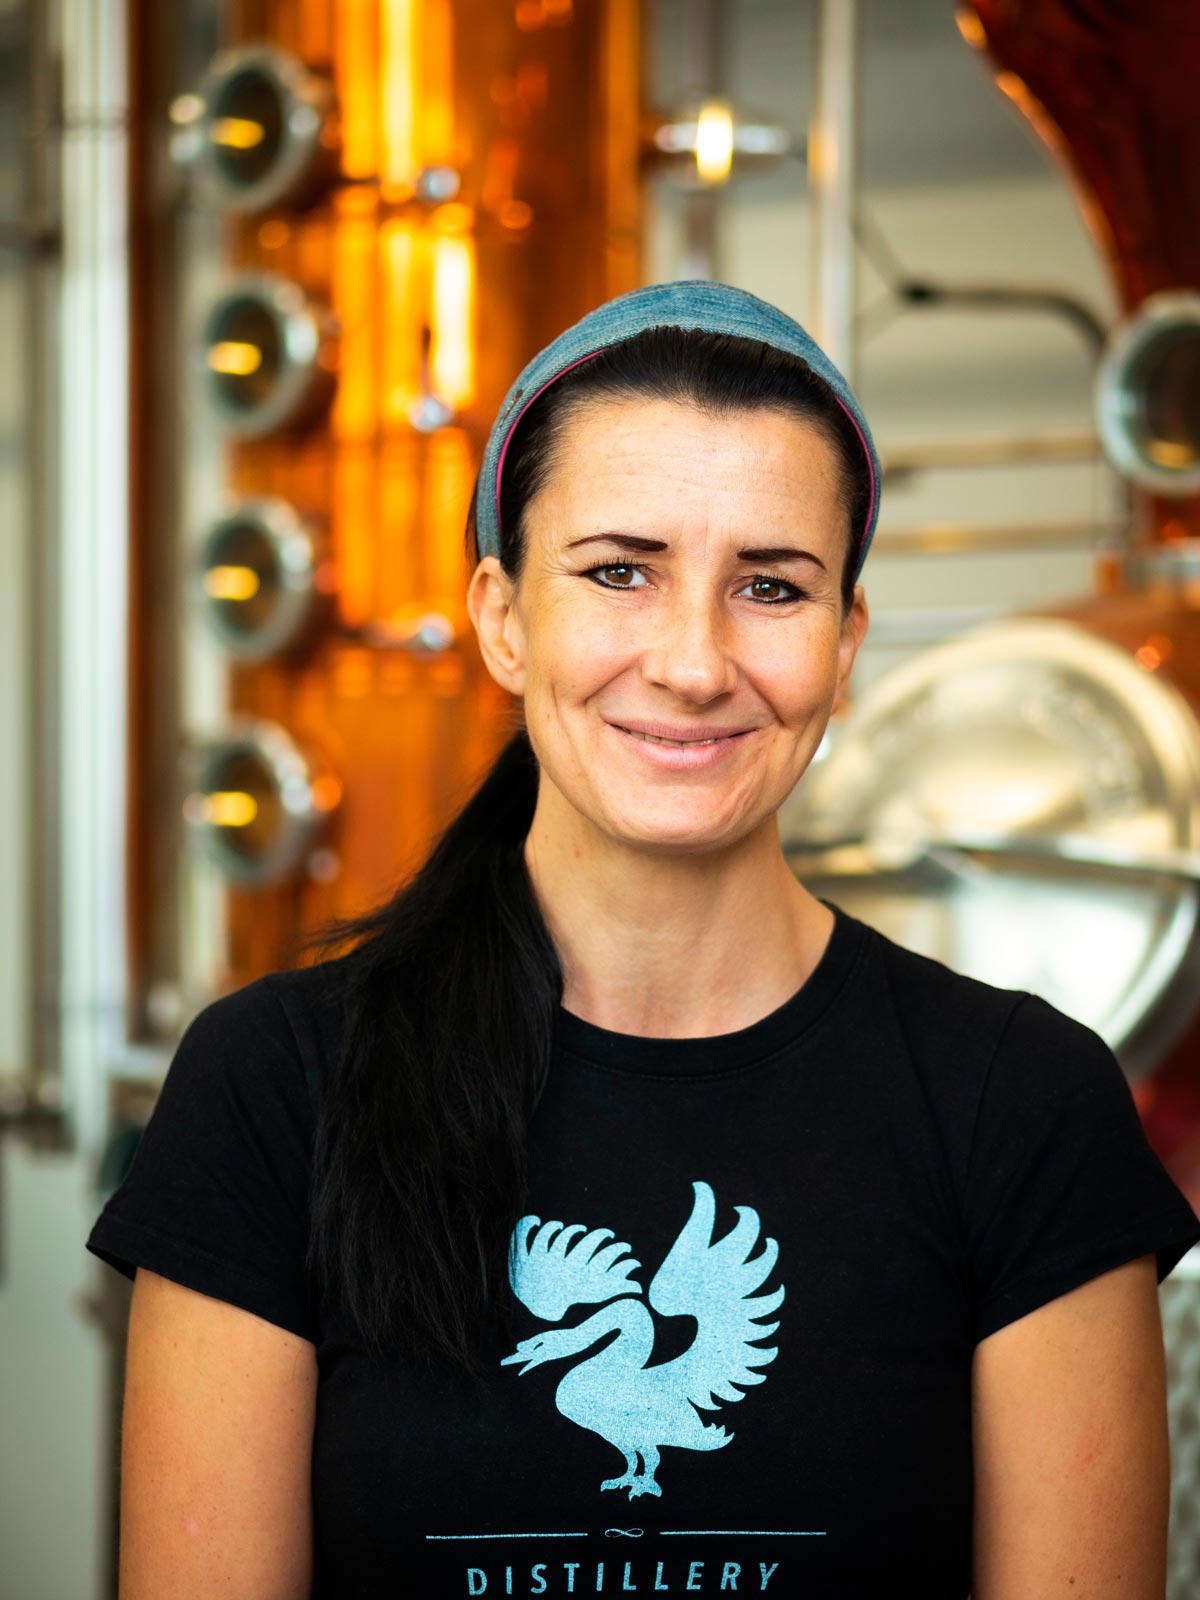 Portrait photo of Claudia Ulbl, Employee at Distillery Krauss GmbH